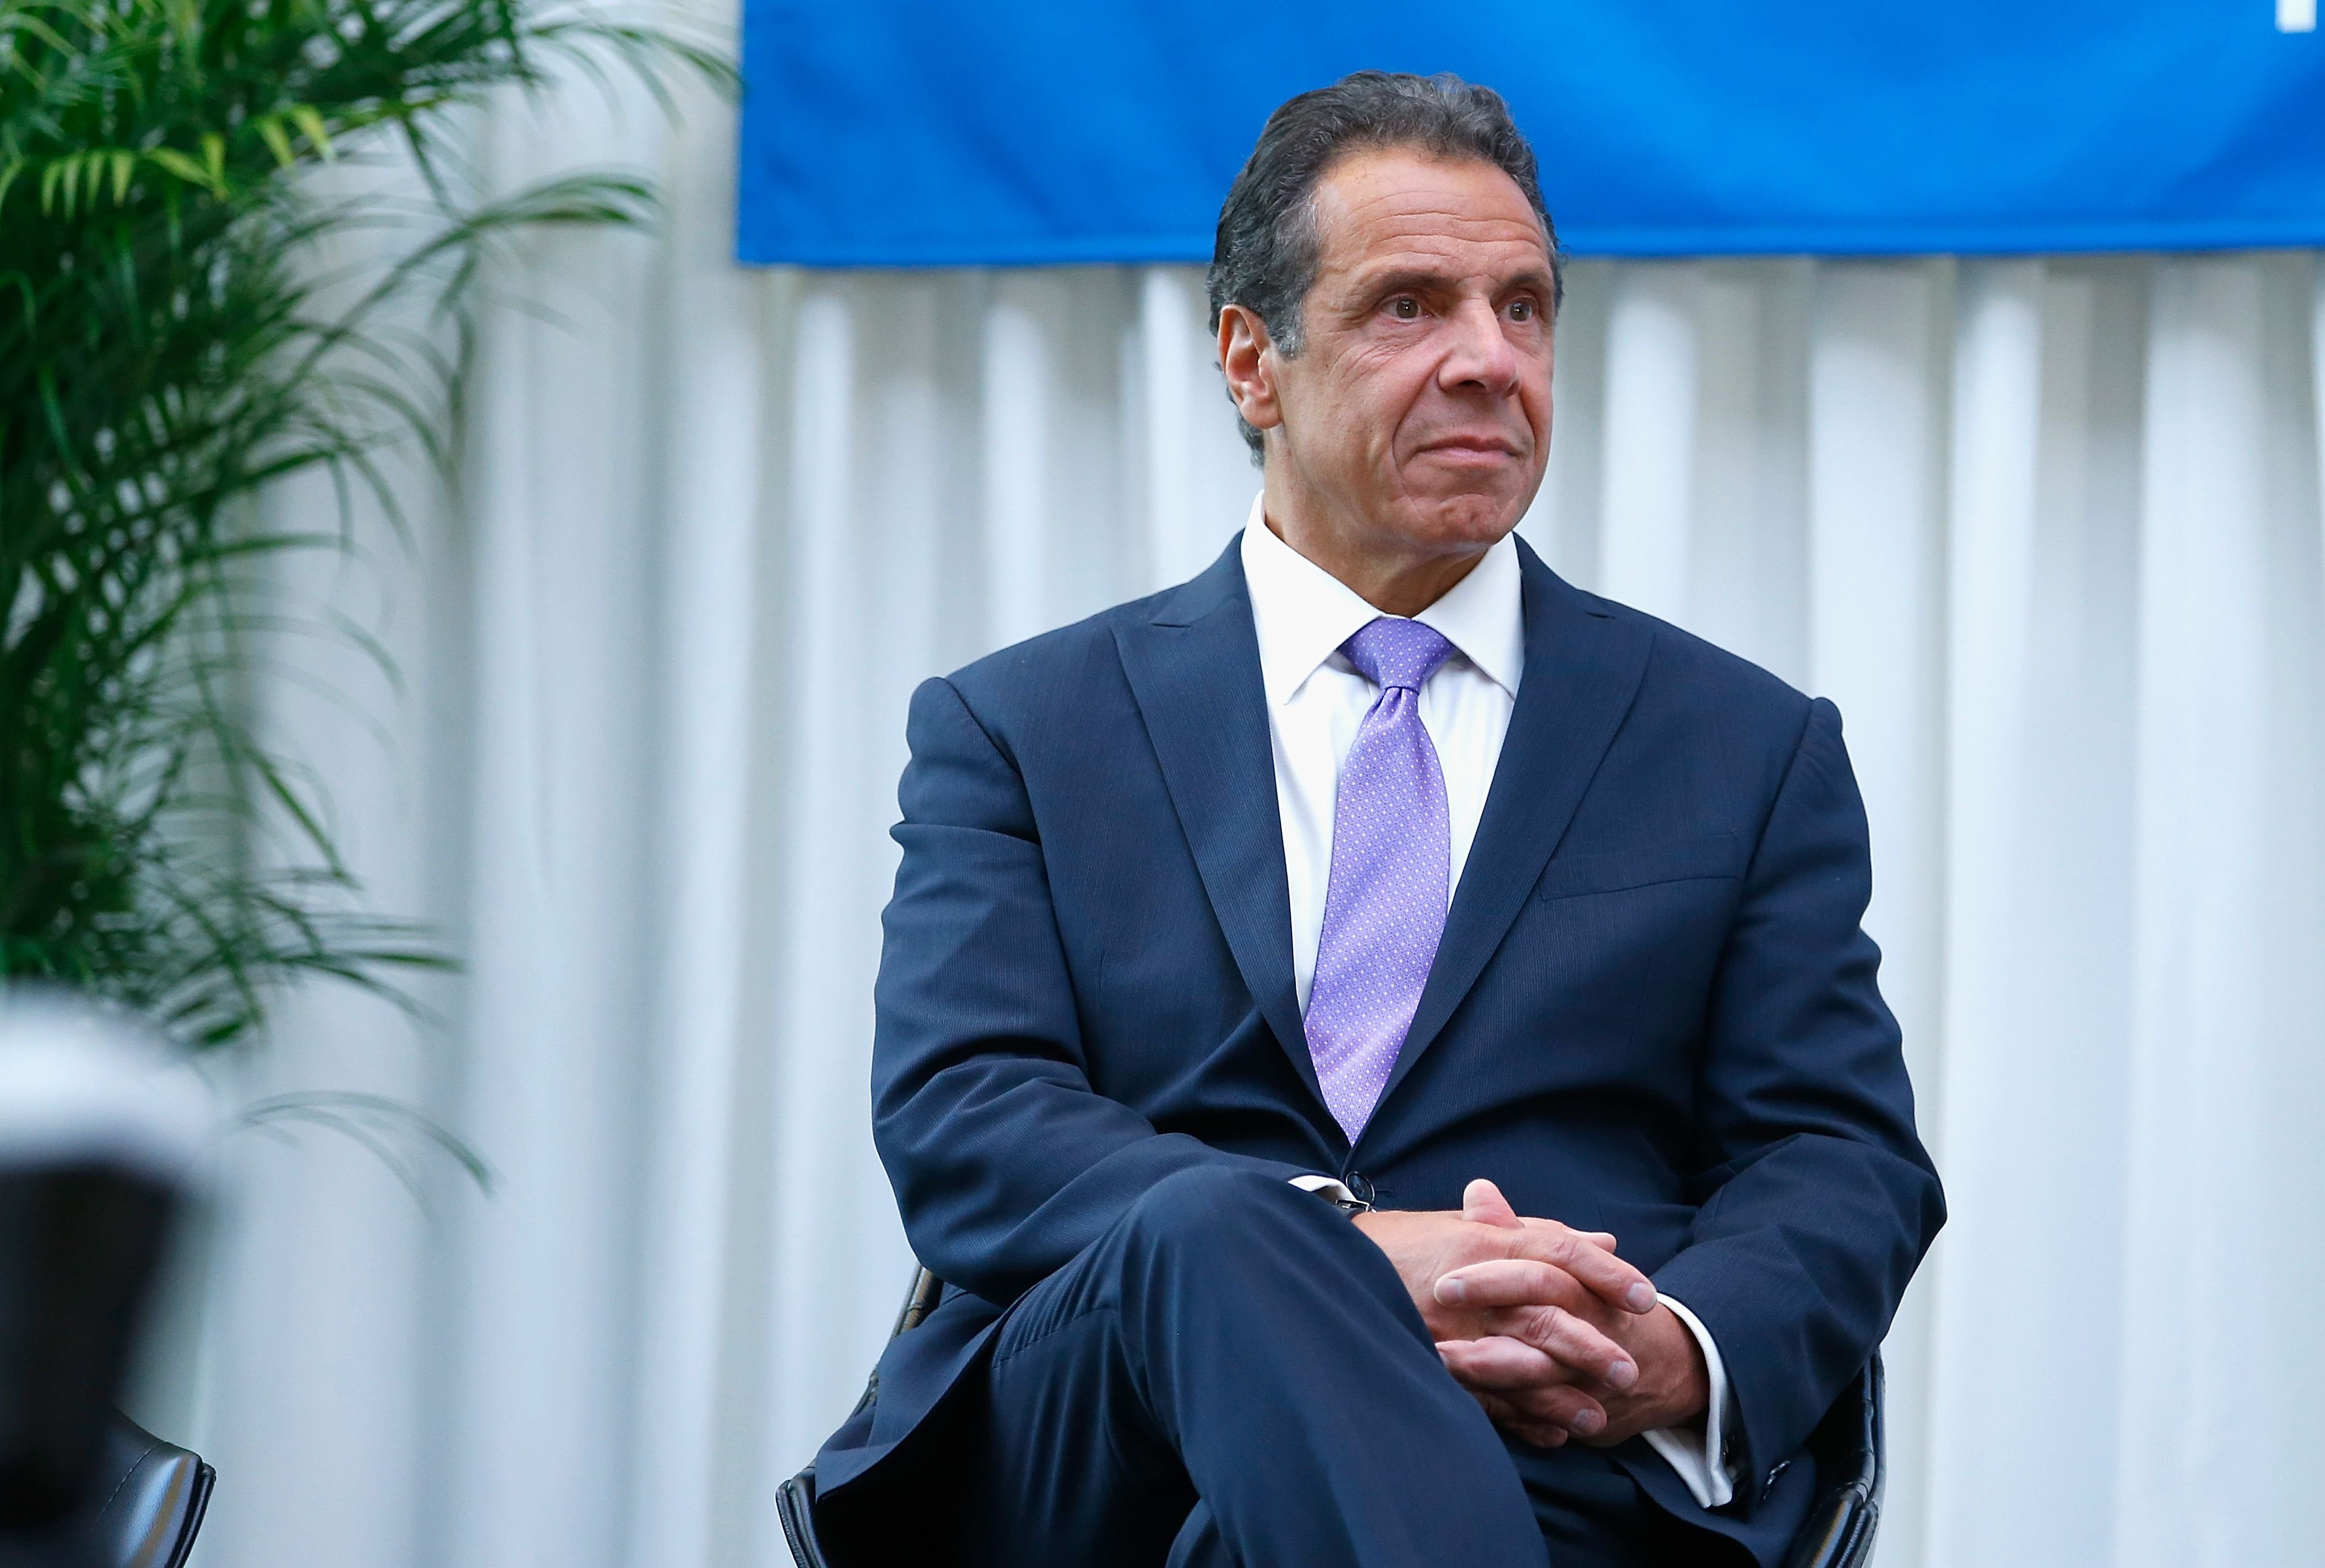 New York State Governor, Andrew Cuomo at the Madison Square Garden celebration of Billy Joel's 100th lifetime show at Madison Square Garden on July 18, 2018   Photo: Getty Images